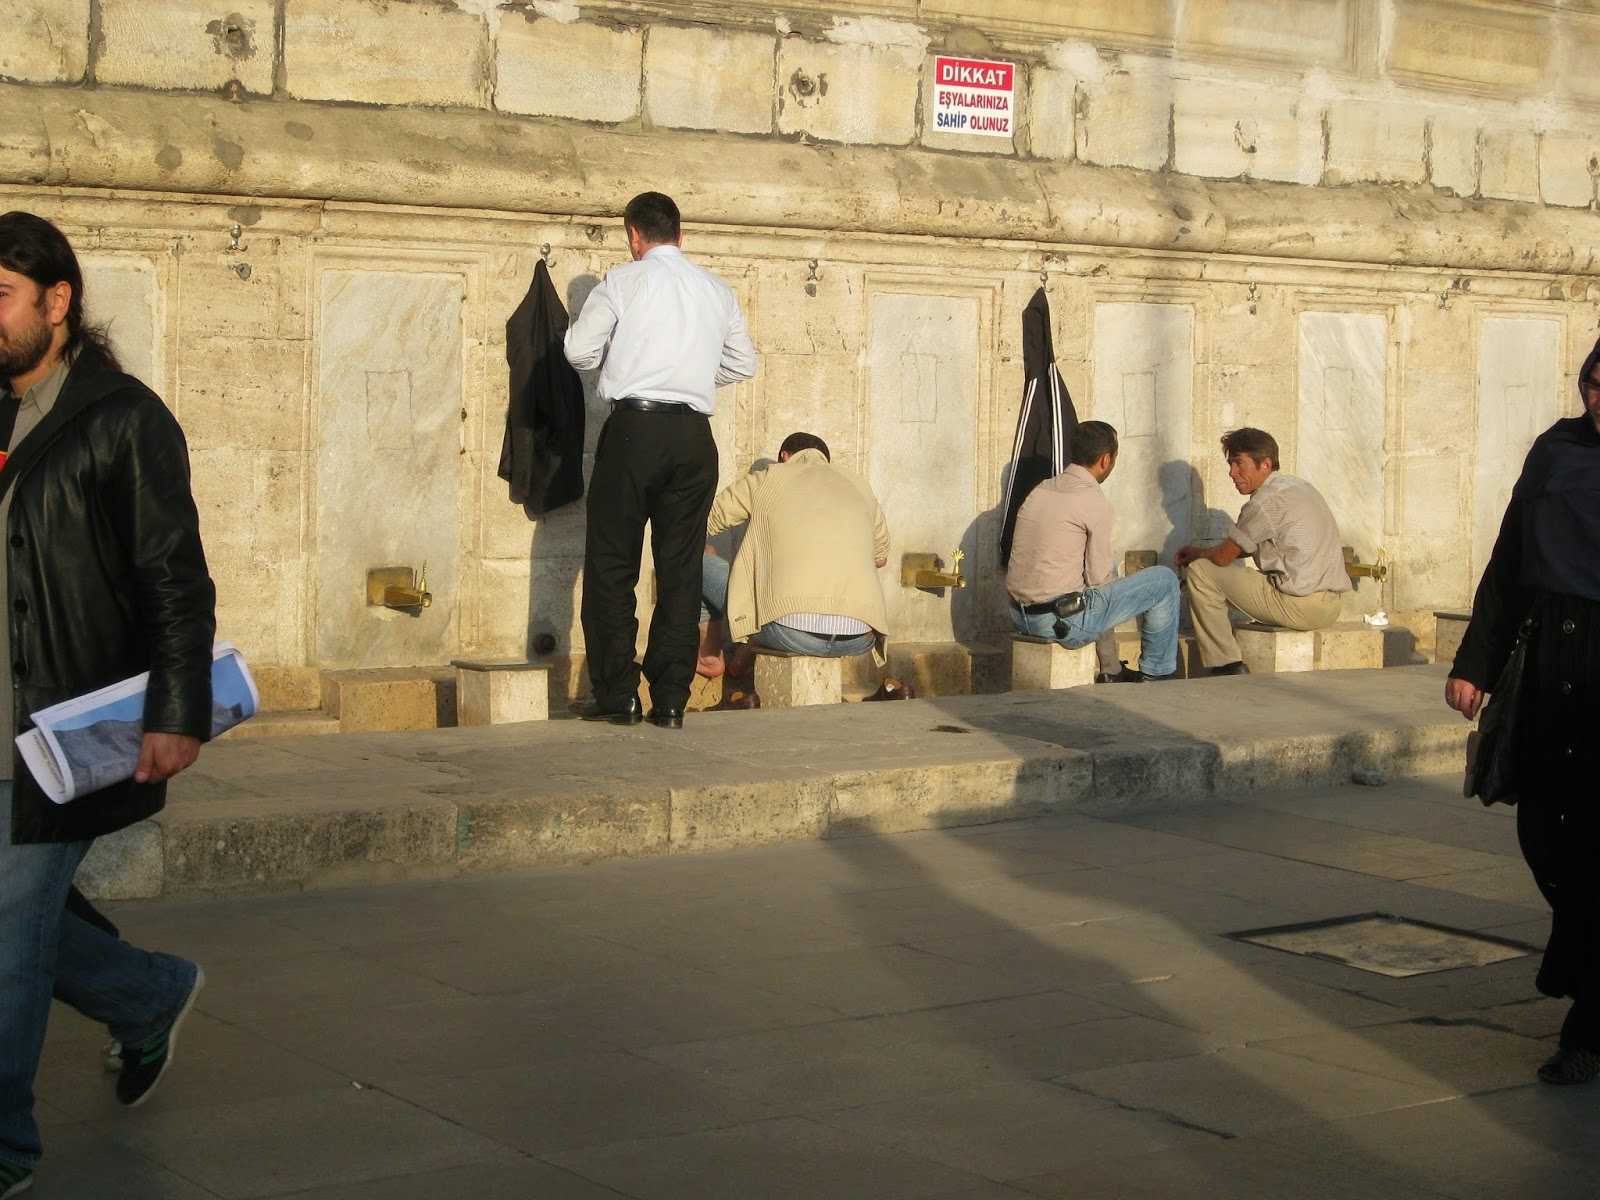 Istanbul - This isn't at the Blue Mosque but muslims wash their hands and feet prior to entering a mosque